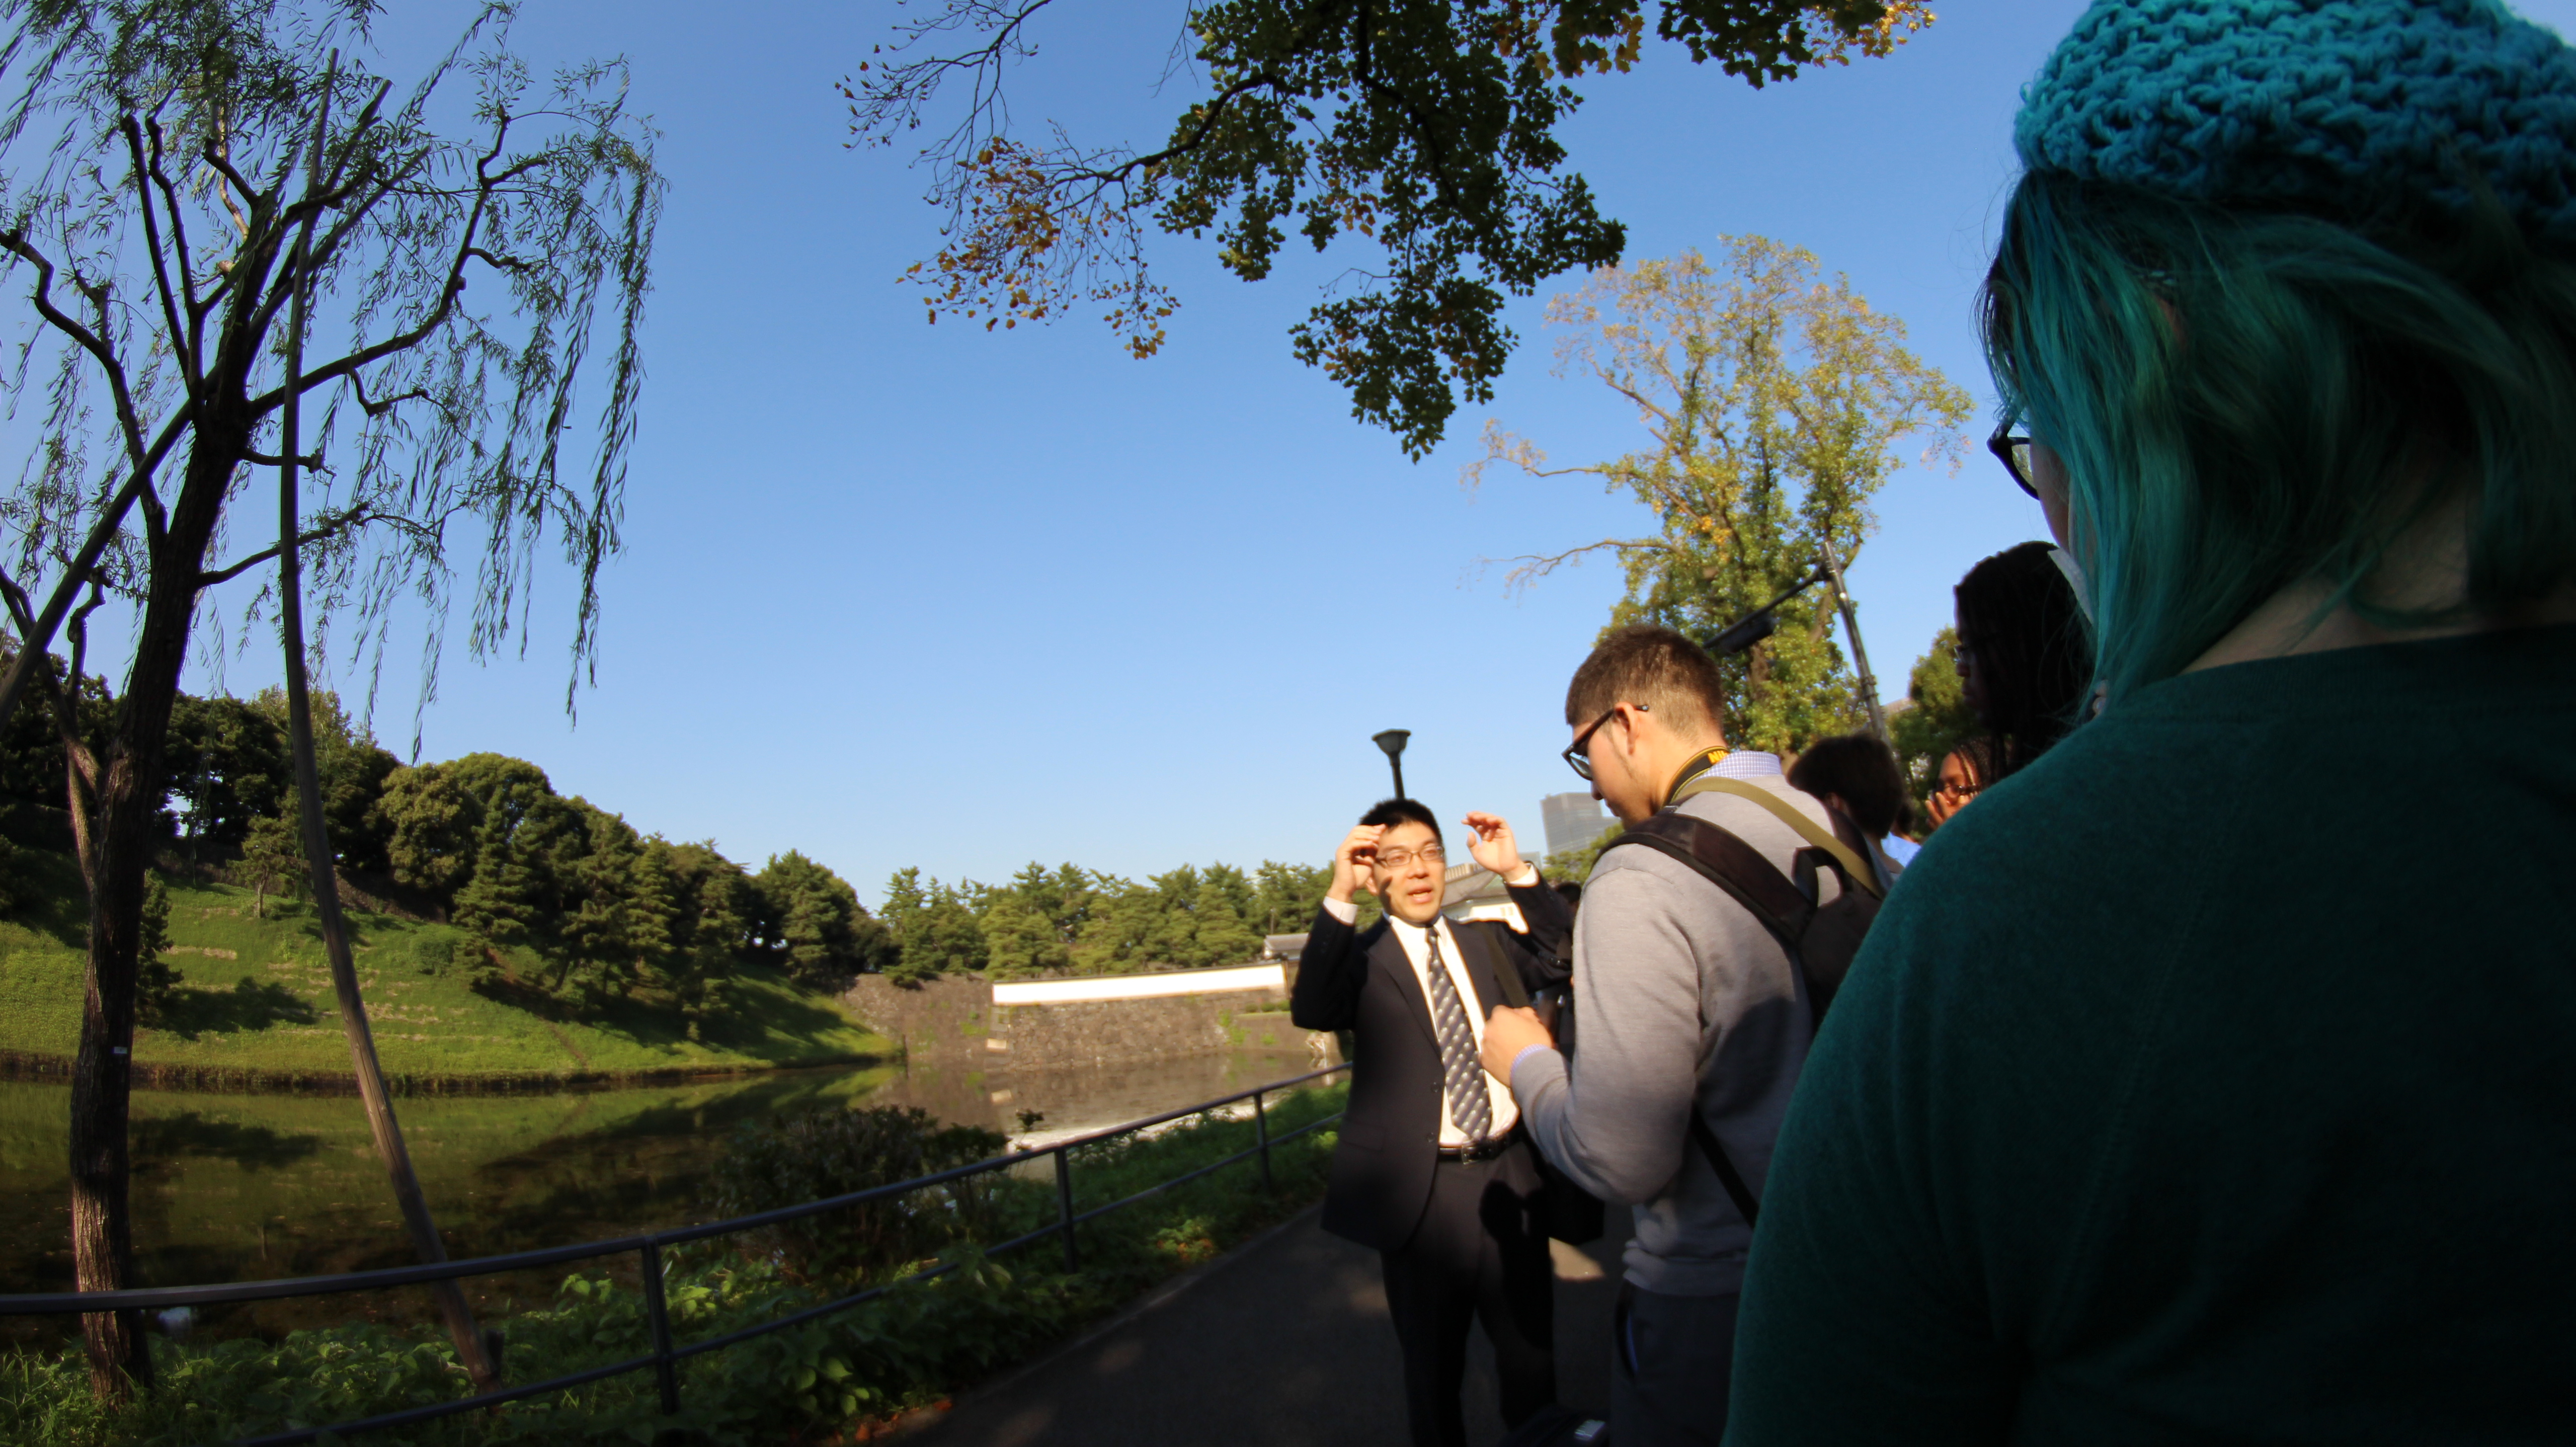 National Diet Building, Imperial Palace, Sensoji Buddhist Temple, and Asakusa Tour